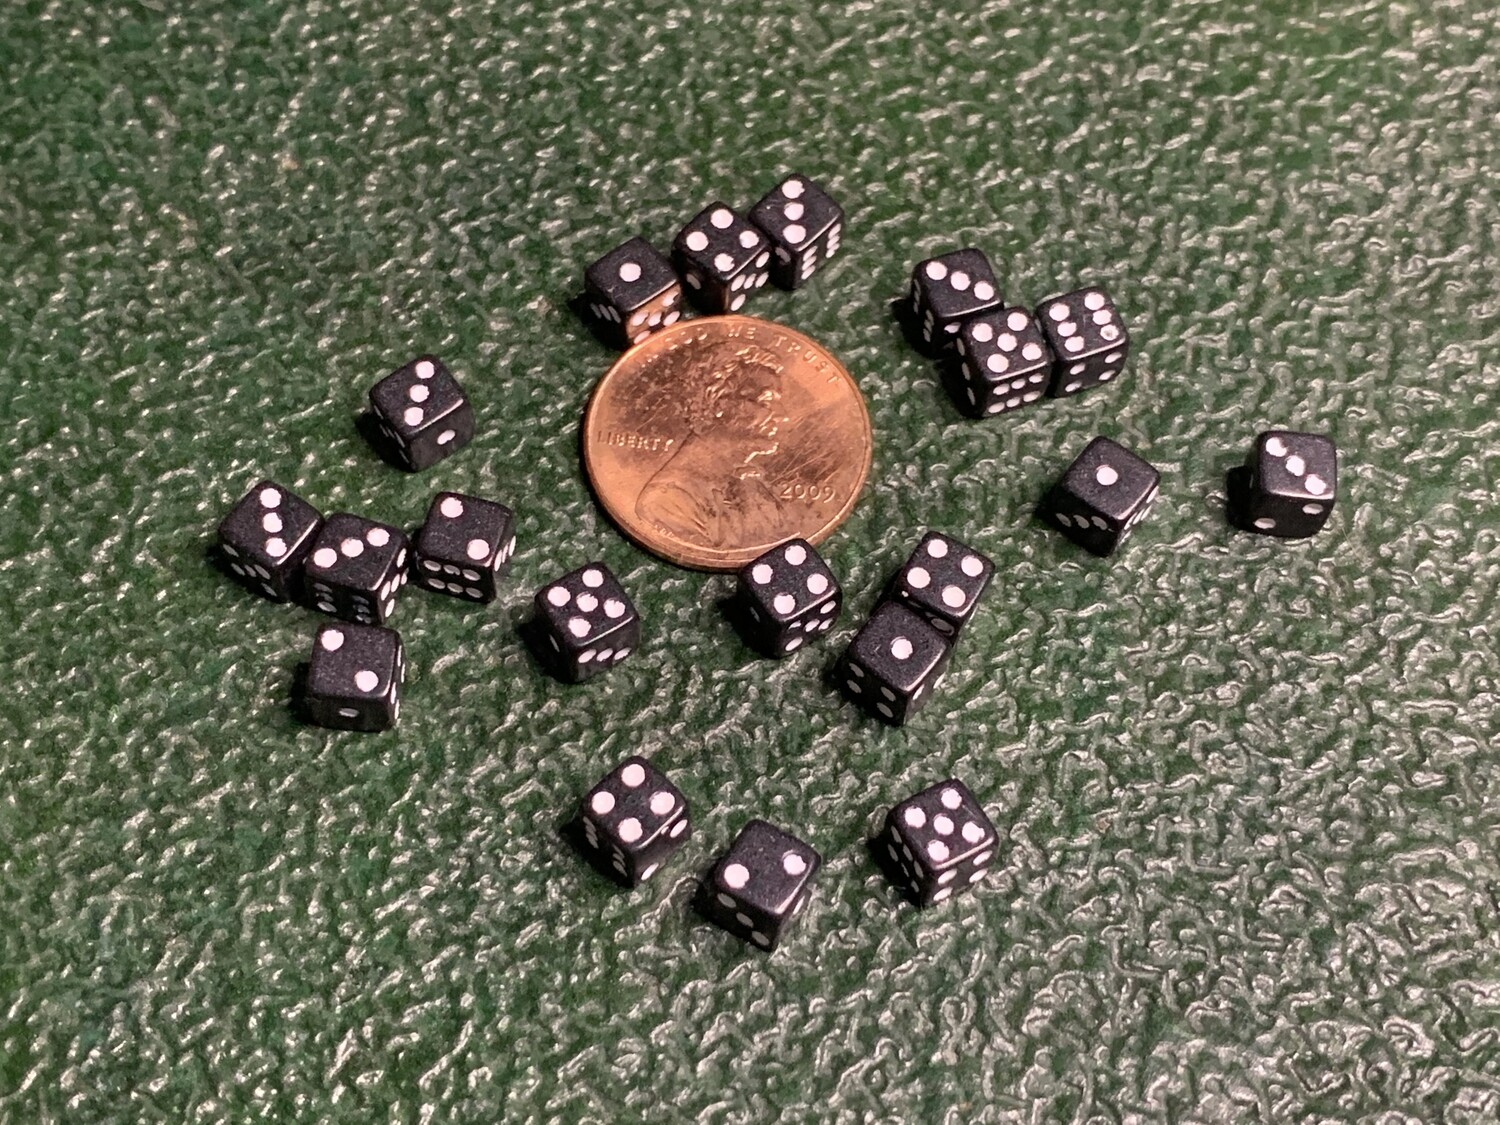 Twenty 5MM Opaque Black with White Square Corner Gaming Dice RPG Tabletop Gaming CCG Tokens